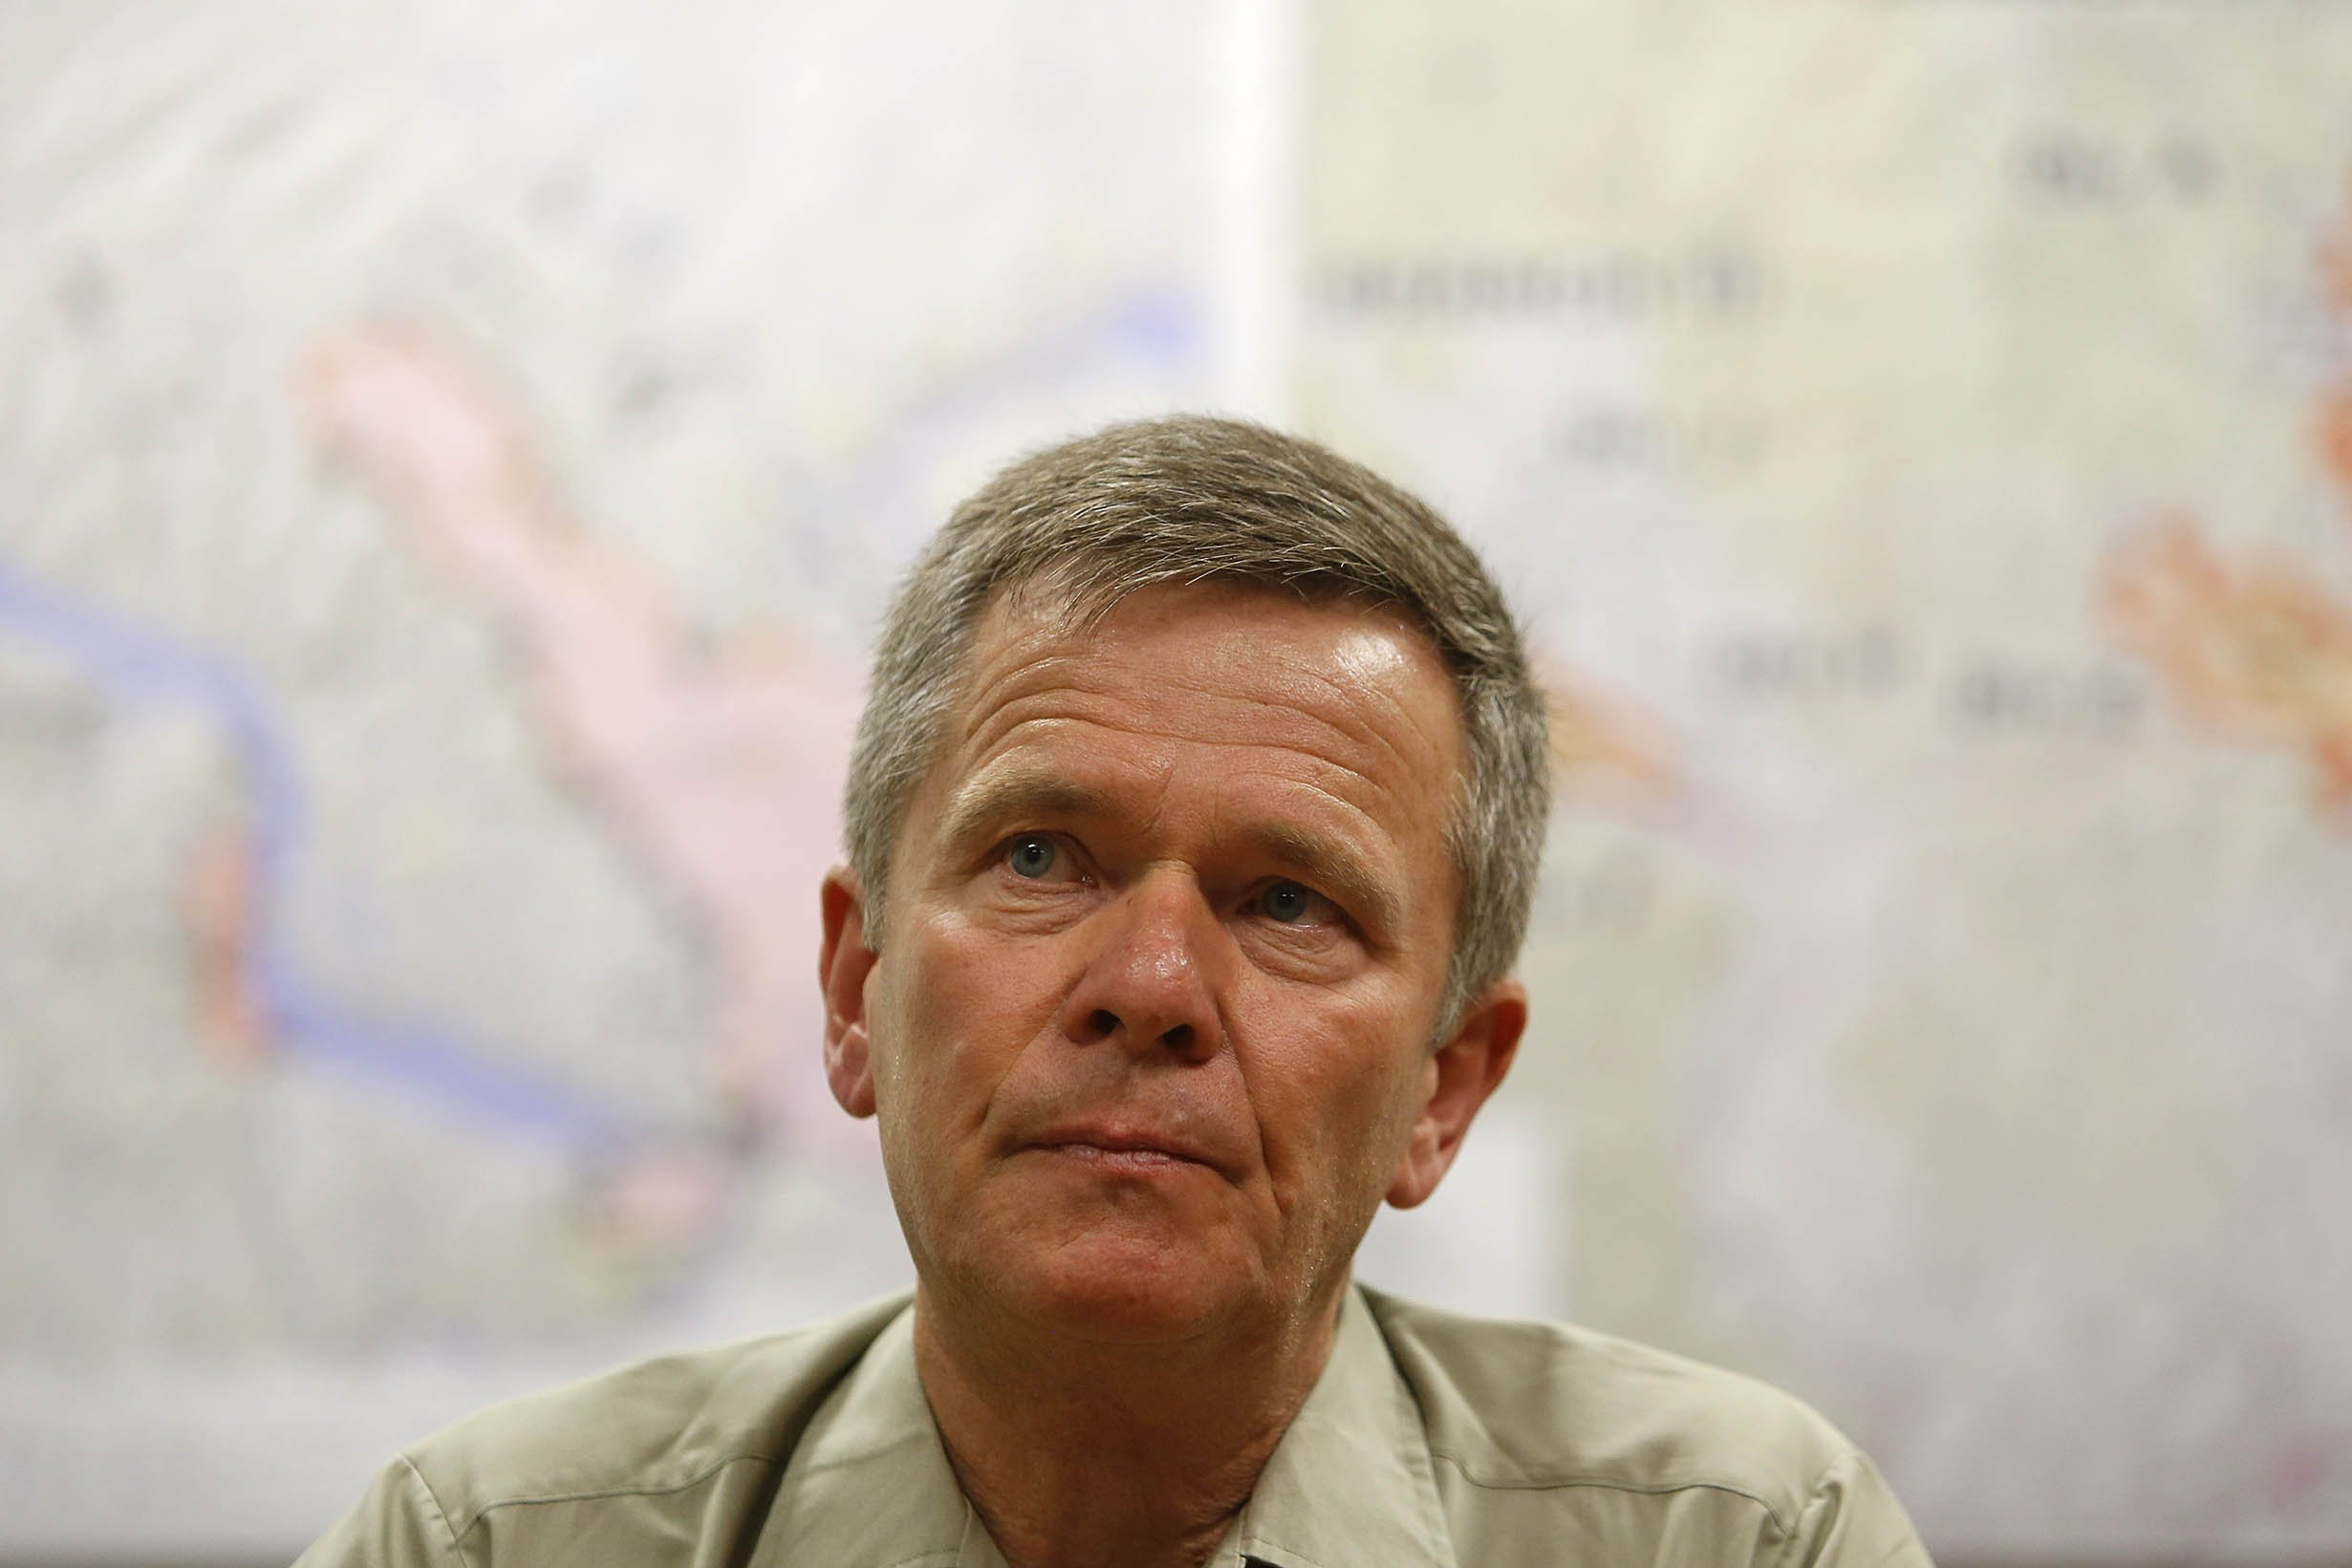 John Phipps, lead of the Coordinated Response Protocol, discusses limited details pertaining to the three firefighters who lost their lives in the Twisp River Fire, at the Okanogan-Wenatchee National Forest Headquarters in Wenatchee, Wash., Sunday, Aug. 23, 2015.